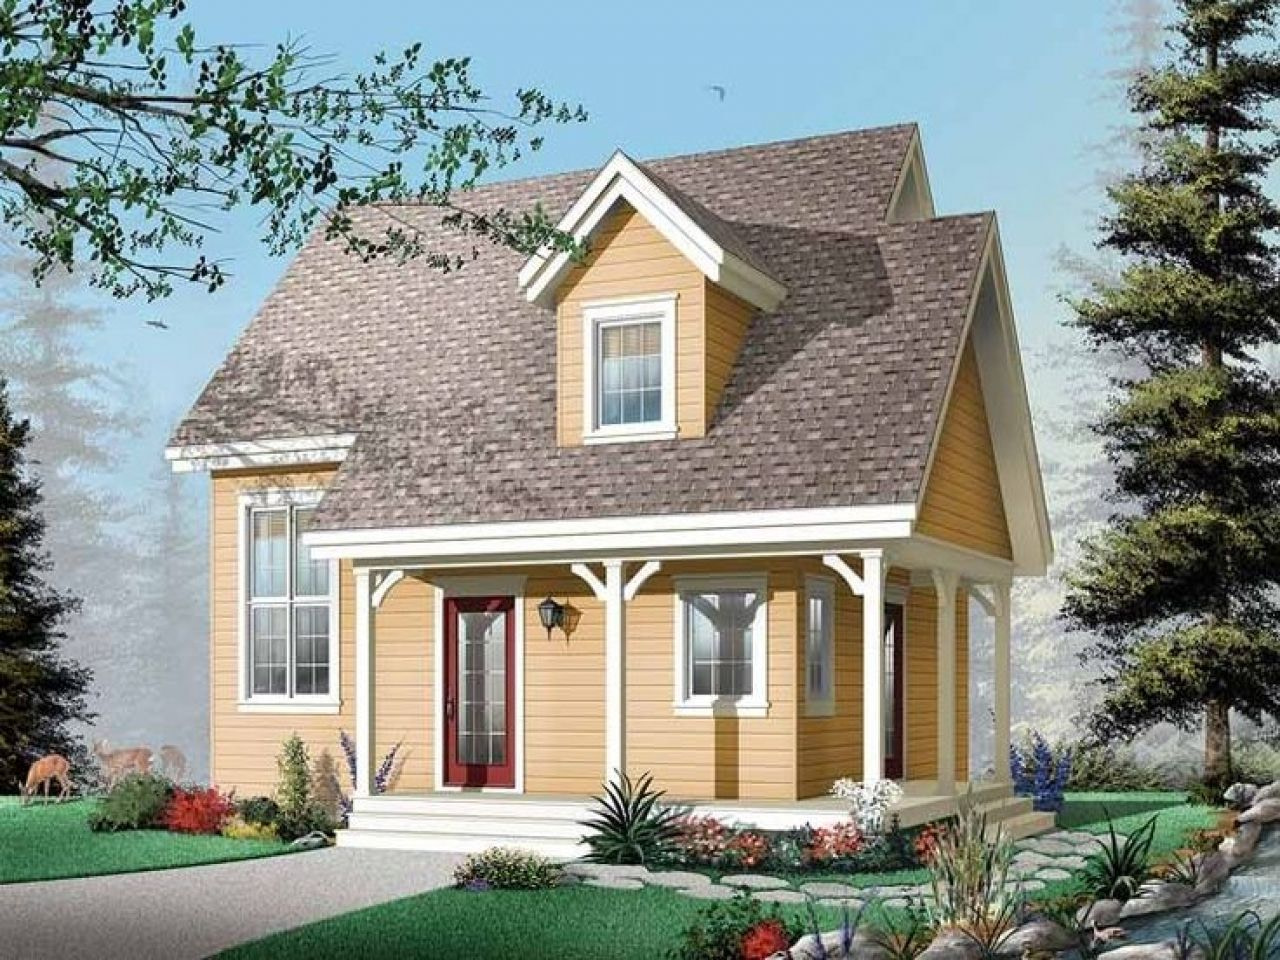 Southern Cottage Single Story House Plans Small Country with Small One Level Farmhouse Plans